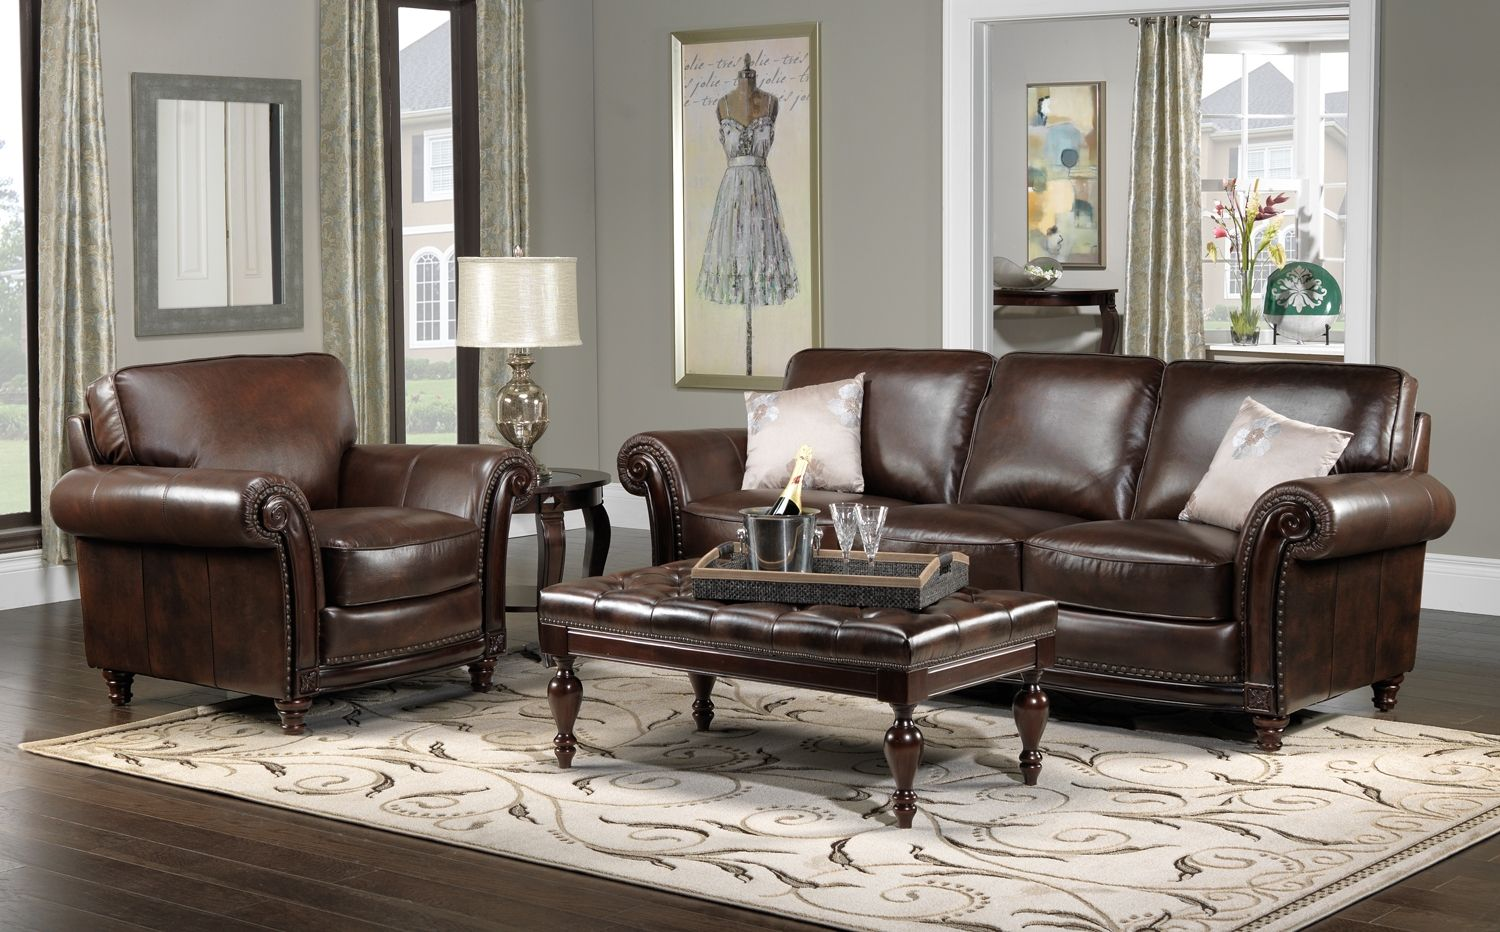 Living Room Designs With Brown Furniture how to decorate with brown leather furniture klein on. decorating